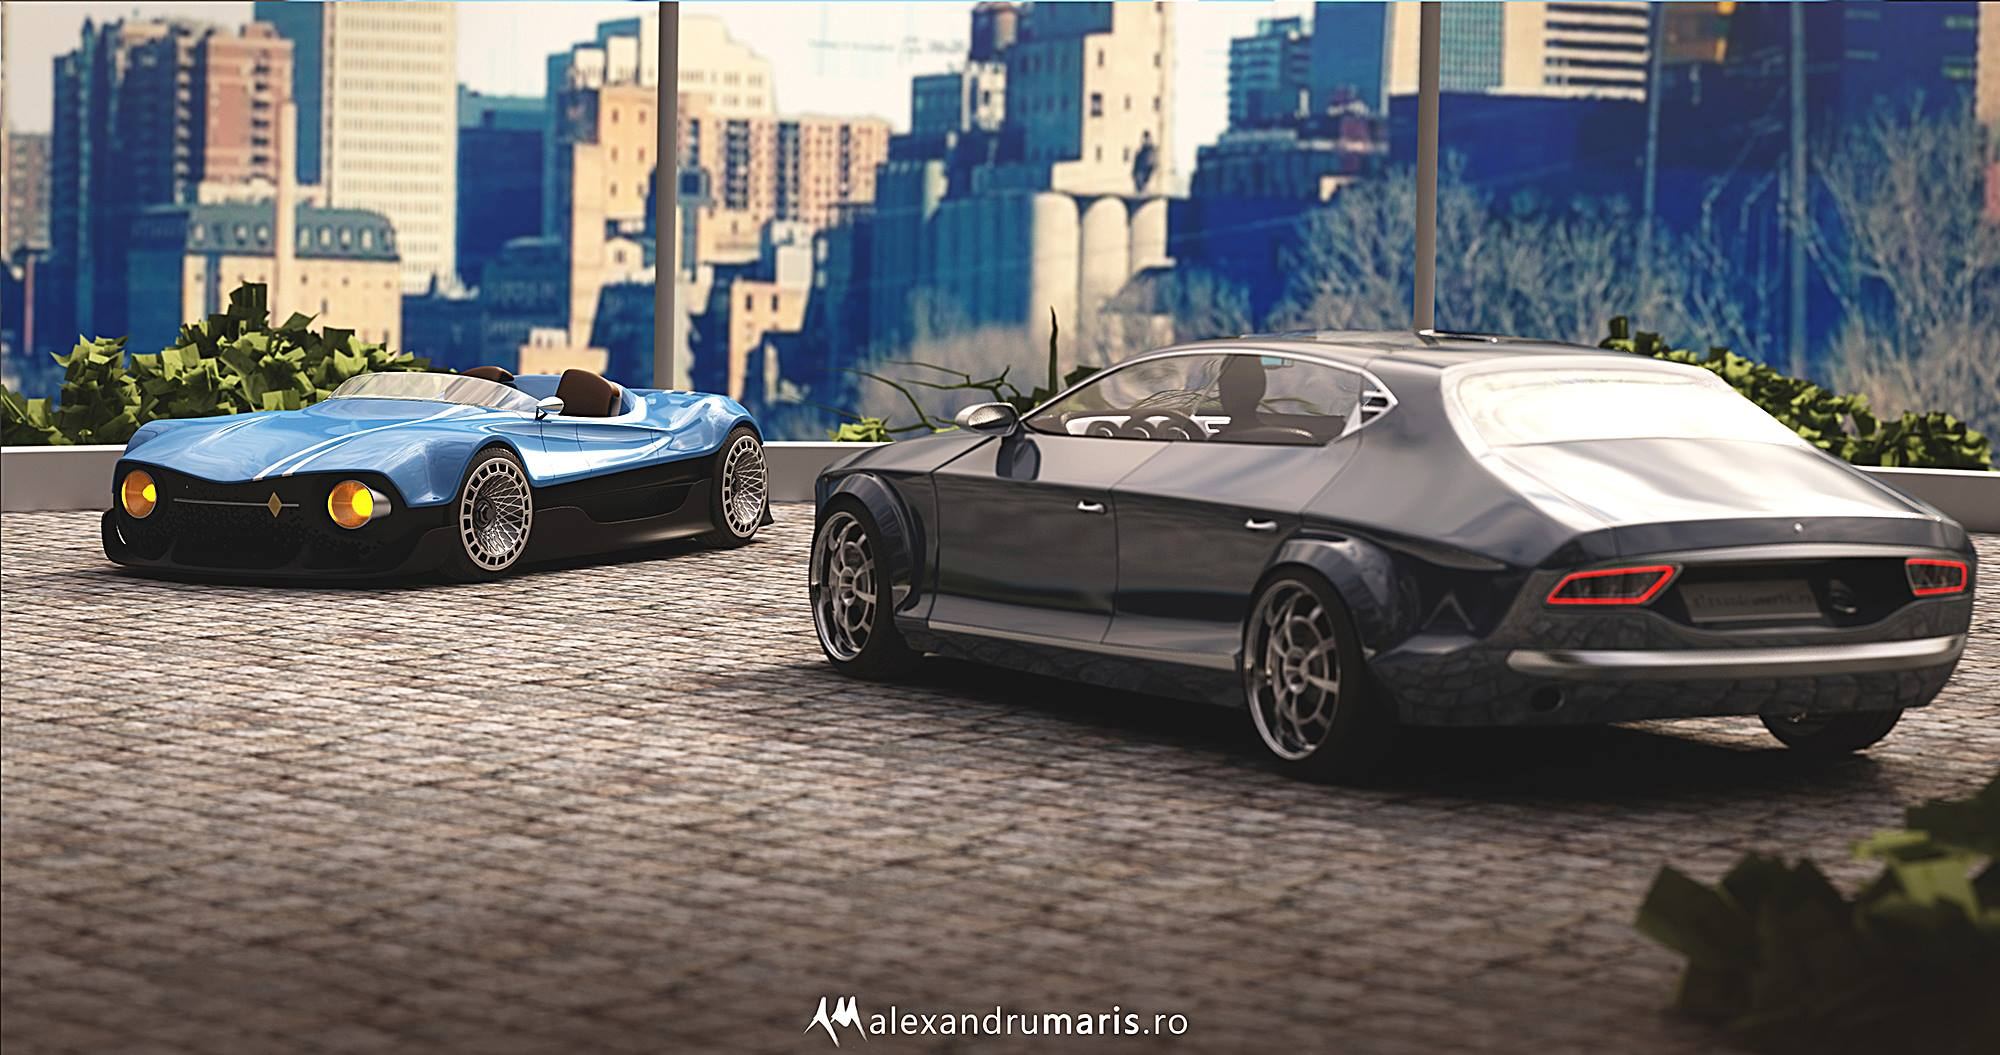 Two Dacia Concepts The 1300 Coupe Based On The 70 S Dacia